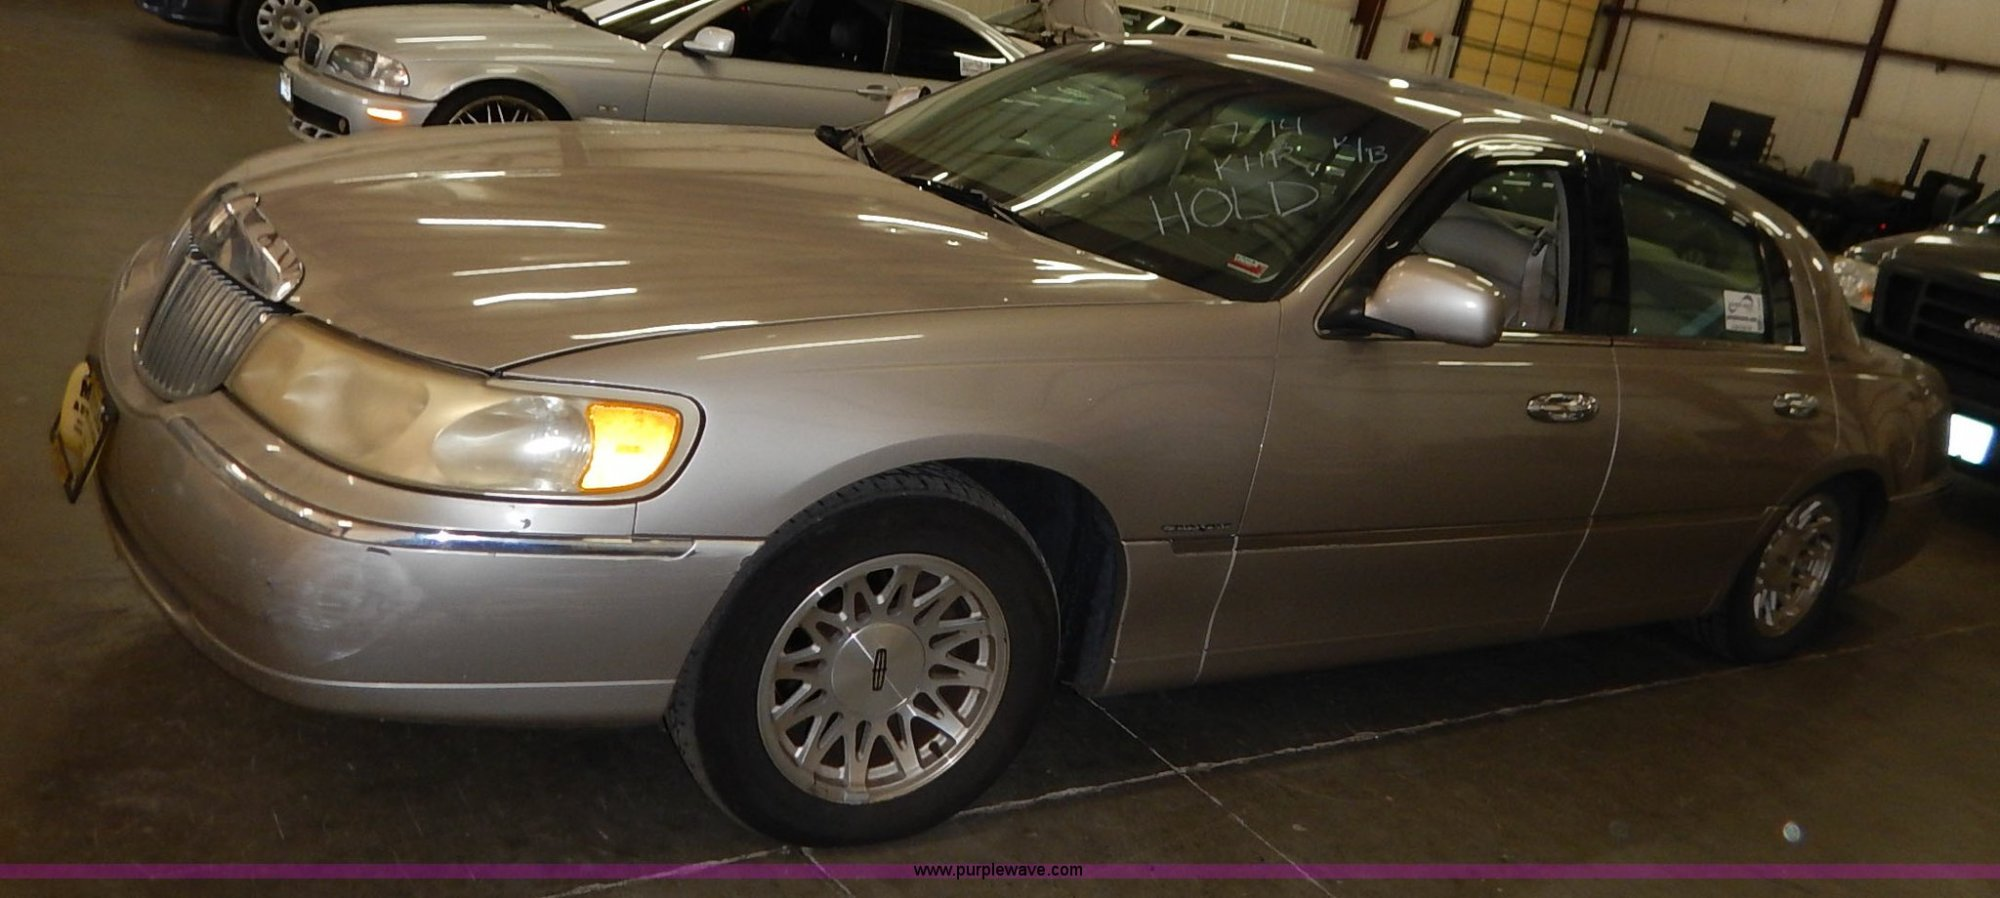 hight resolution of k7465 image for item k7465 1999 lincoln town car signature